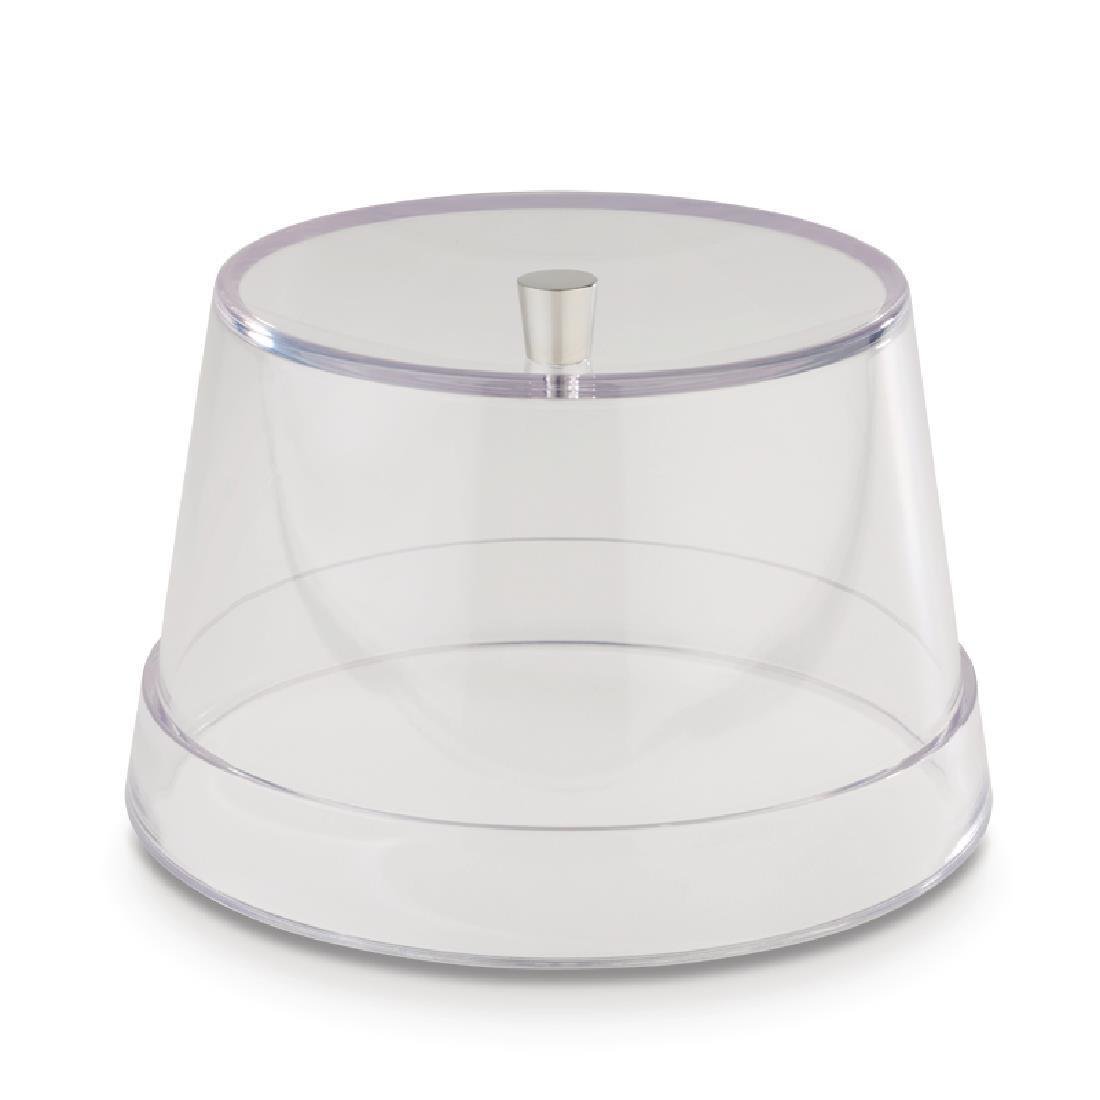 APS+ Bakery Tray Cover Clear 185mm - Each - DE550